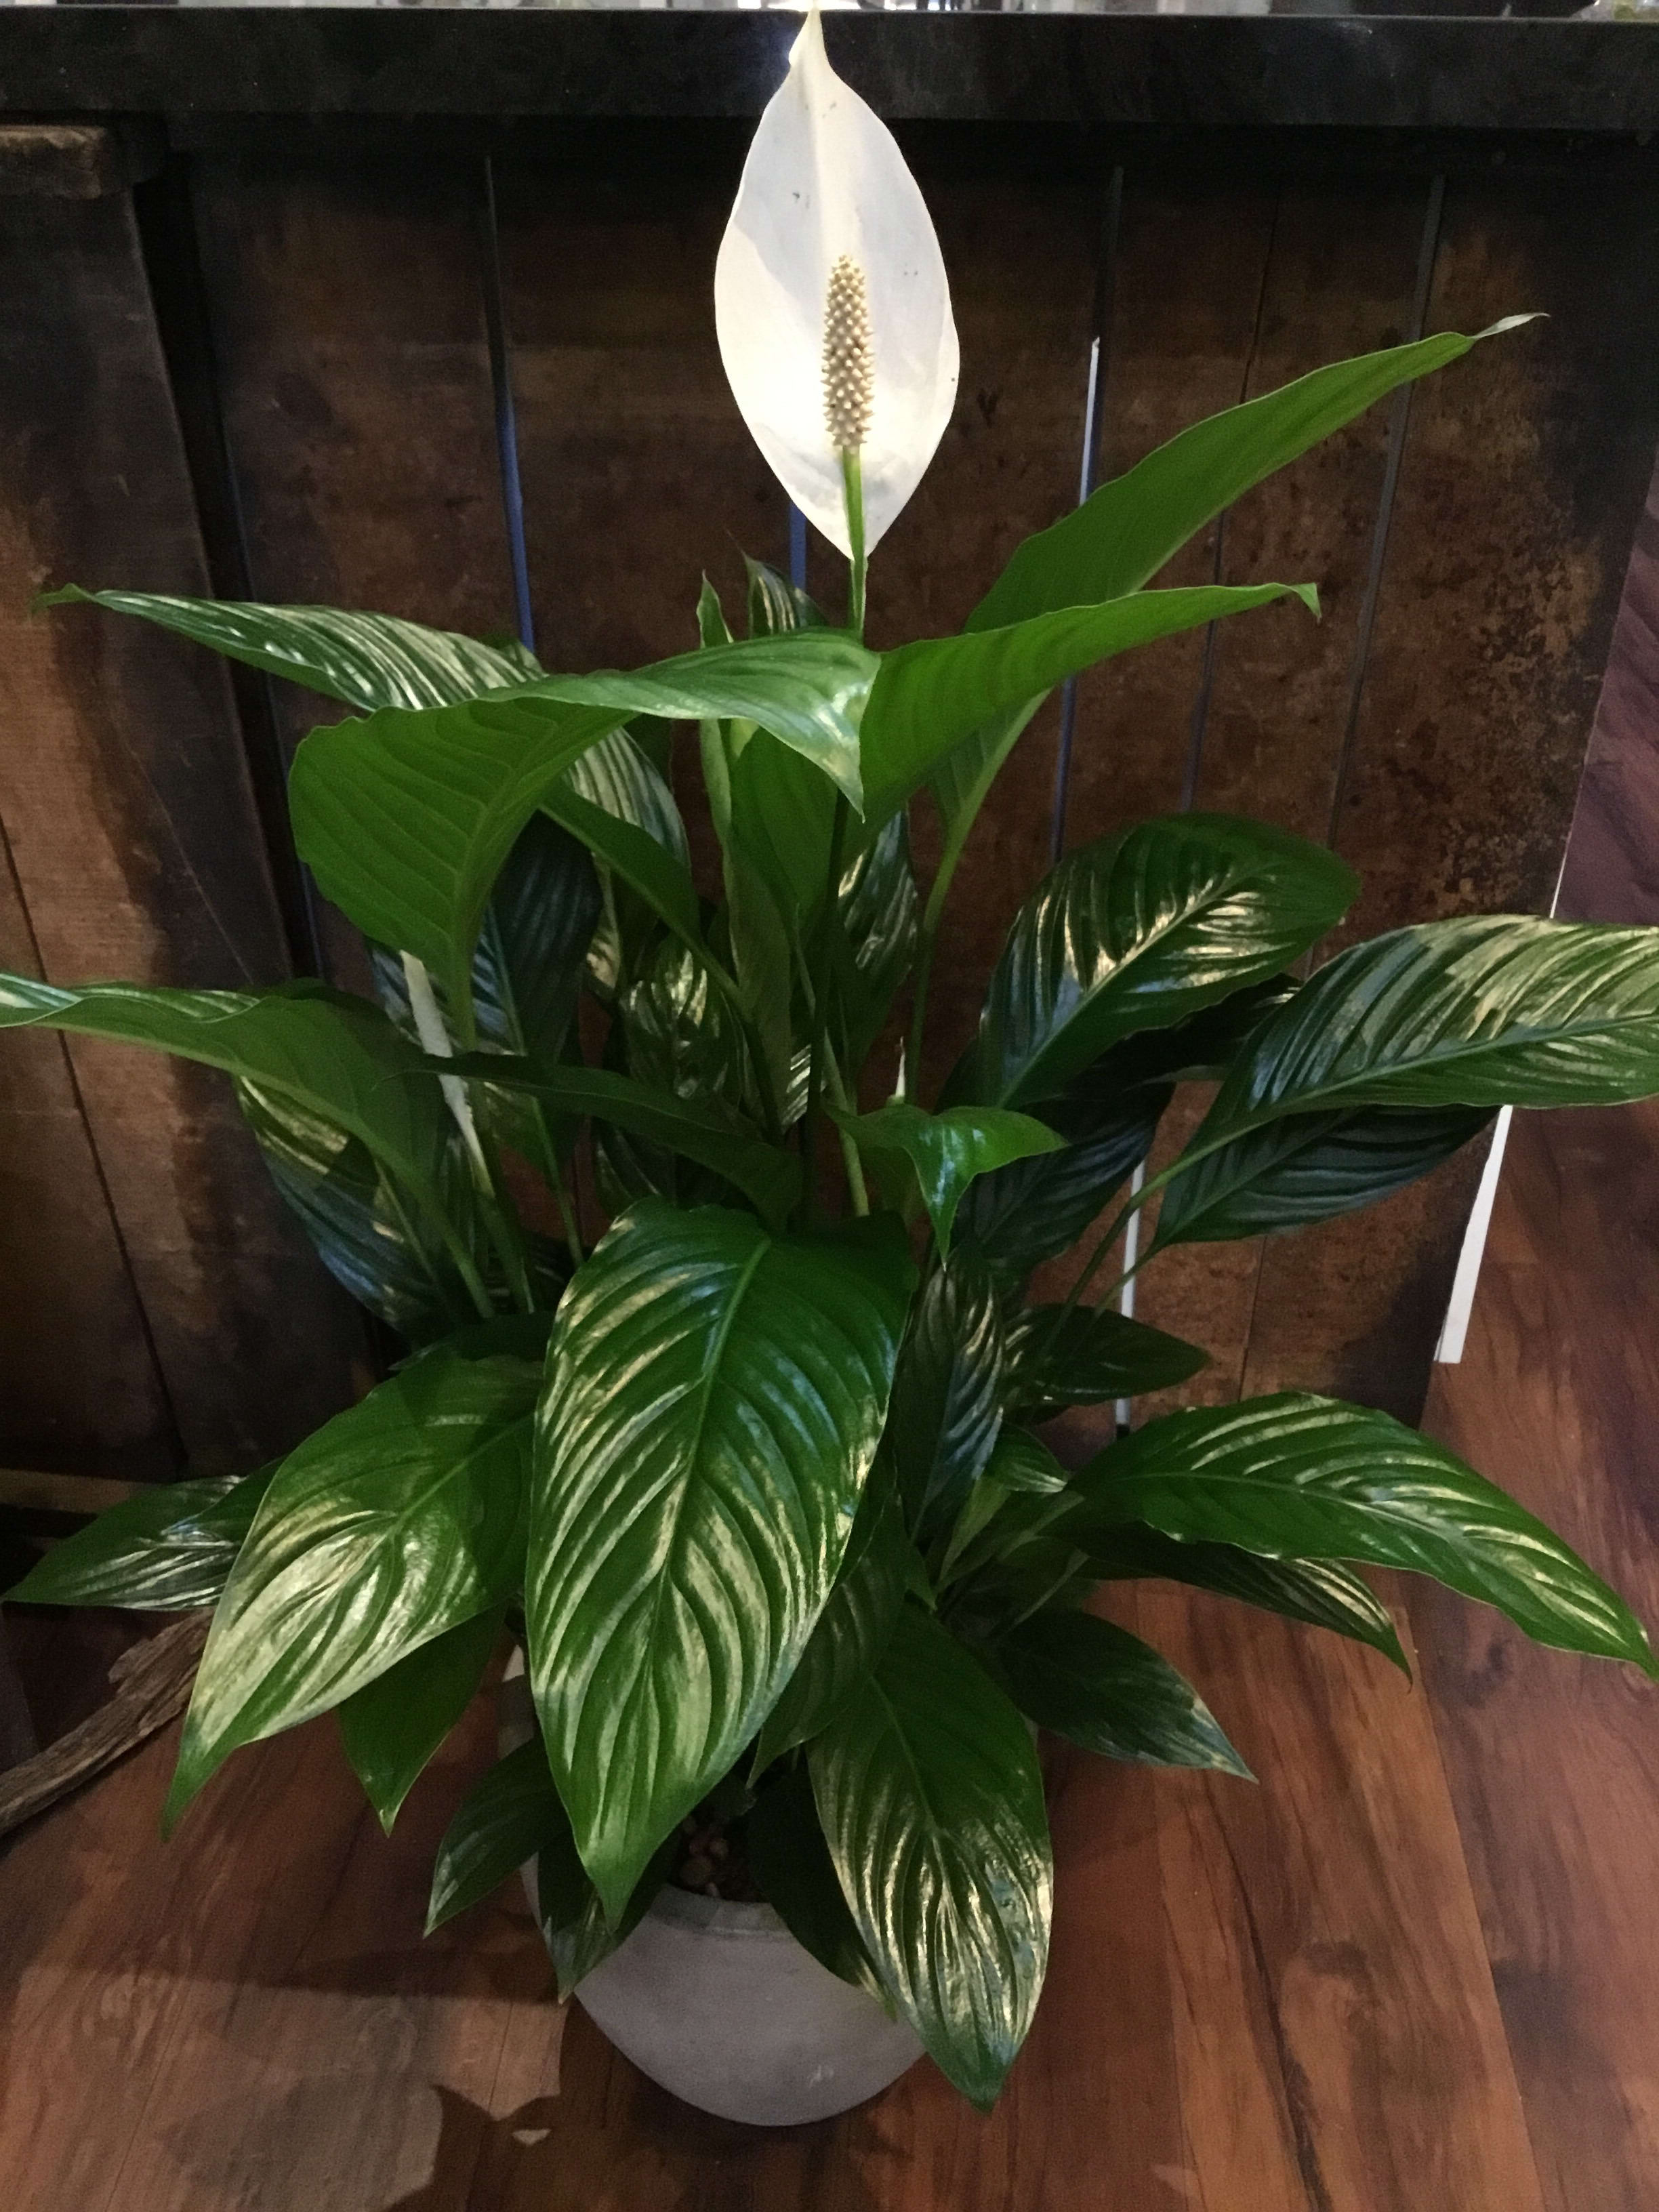 Peace Lily plant in Burlingame, CA | Floral Art and Decor on corn plant houseplant, bamboo palm houseplant, dragon tree houseplant, kentia palm houseplant, snake plant houseplant, kalanchoe houseplant, begonia houseplant, nephthytis houseplant, rubber plant houseplant, philodendron houseplant, purple wandering jew houseplant, ivy houseplant, cactus houseplant, rubber tree houseplant, schefflera houseplant, dieffenbachia houseplant, boston fern houseplant, peperomia houseplant, dracaena houseplant,